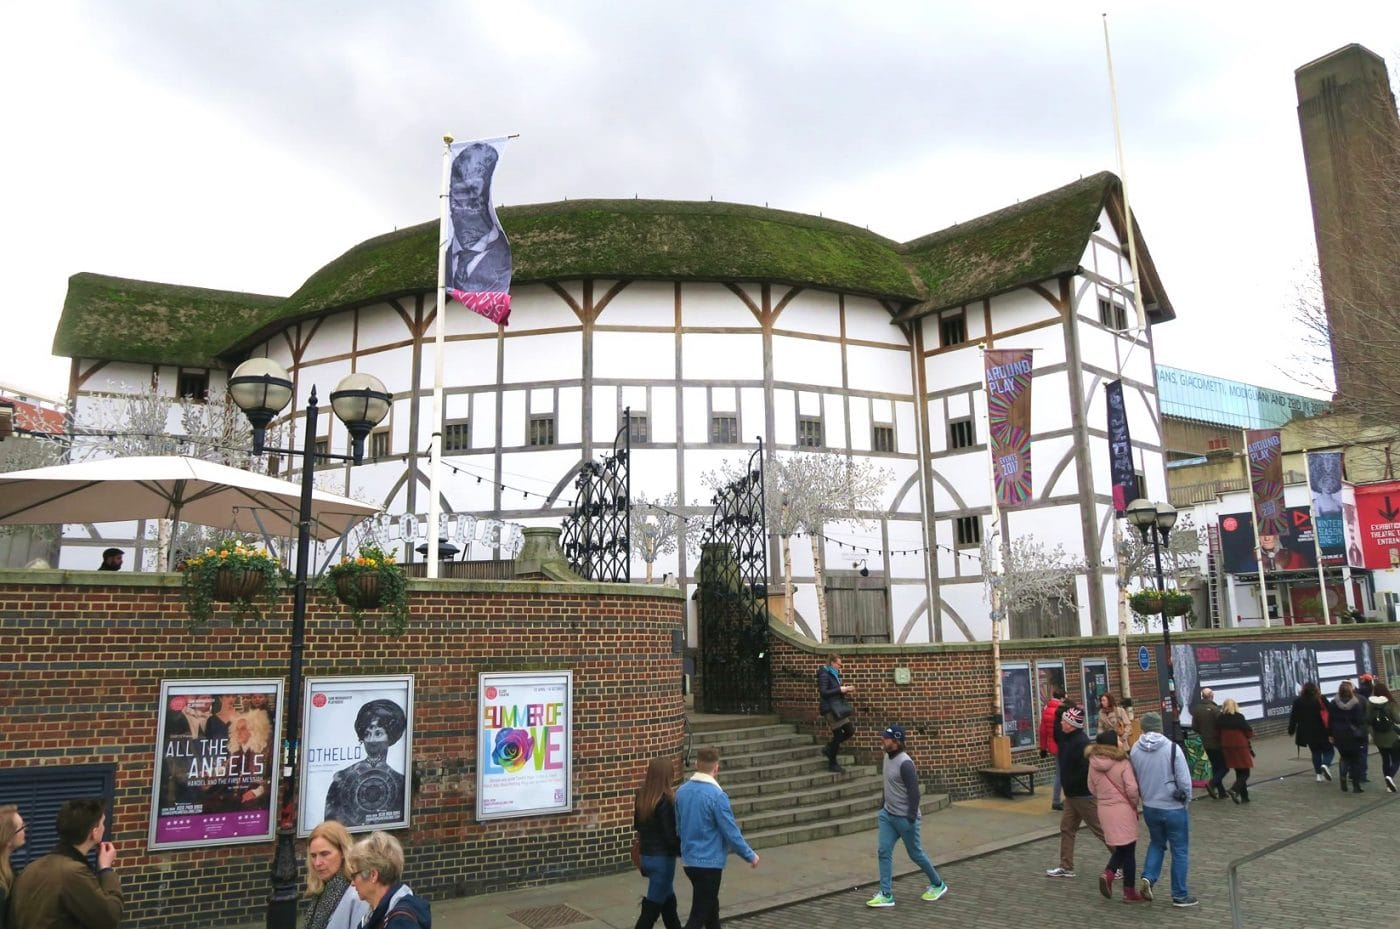 Take in a production at the Globe Theatre, London